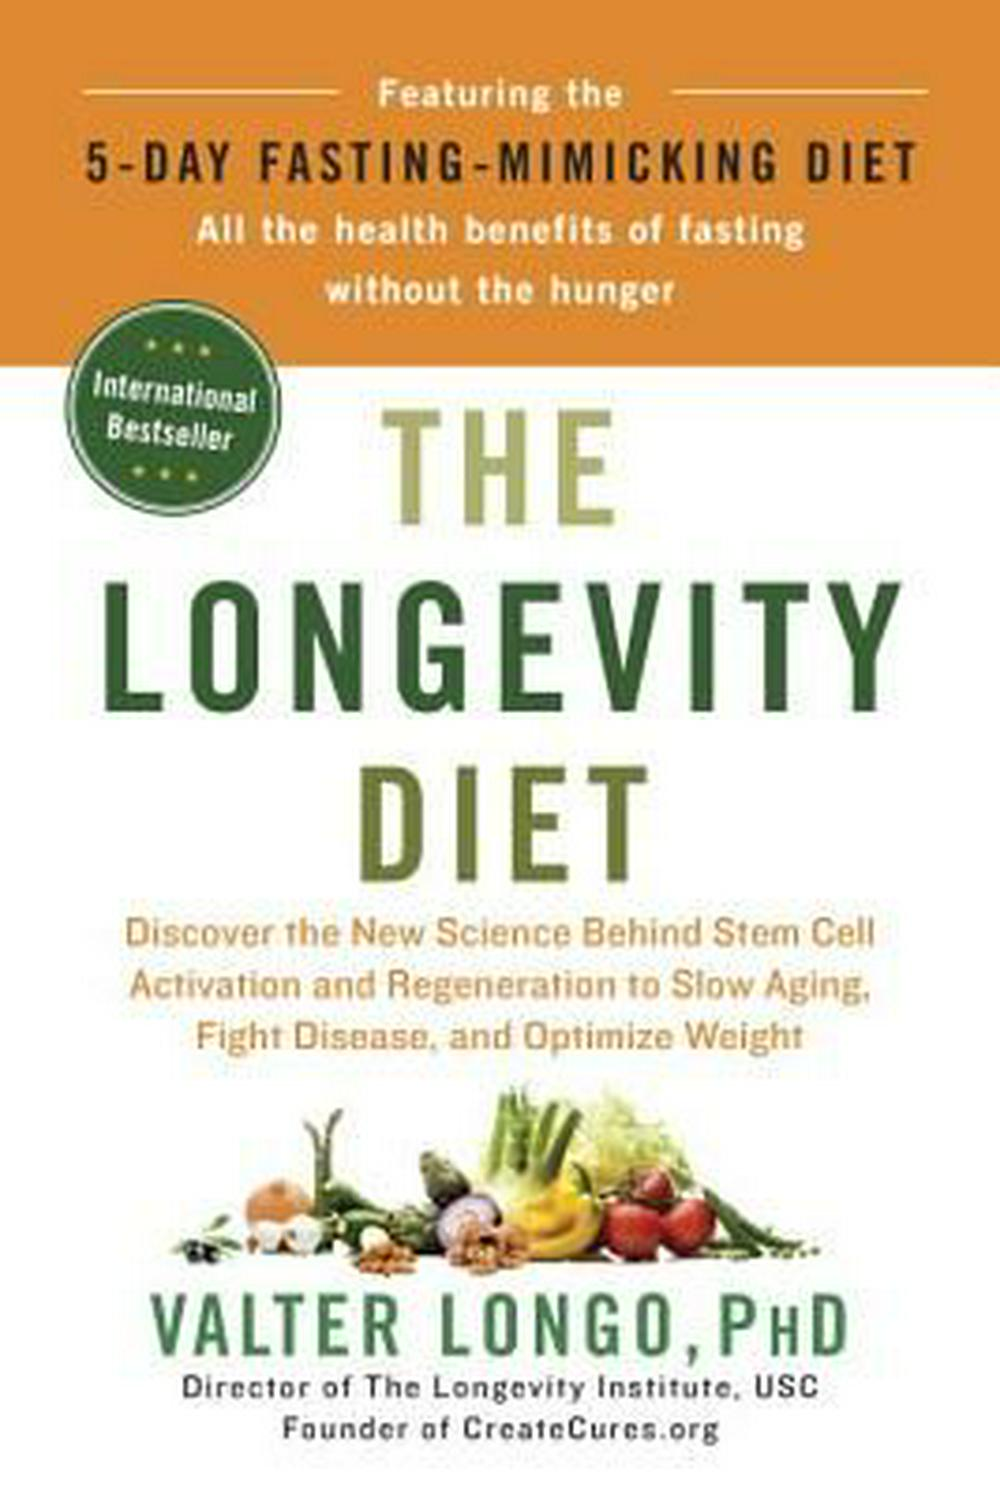 Booko: Comparing prices for The Longevity Diet